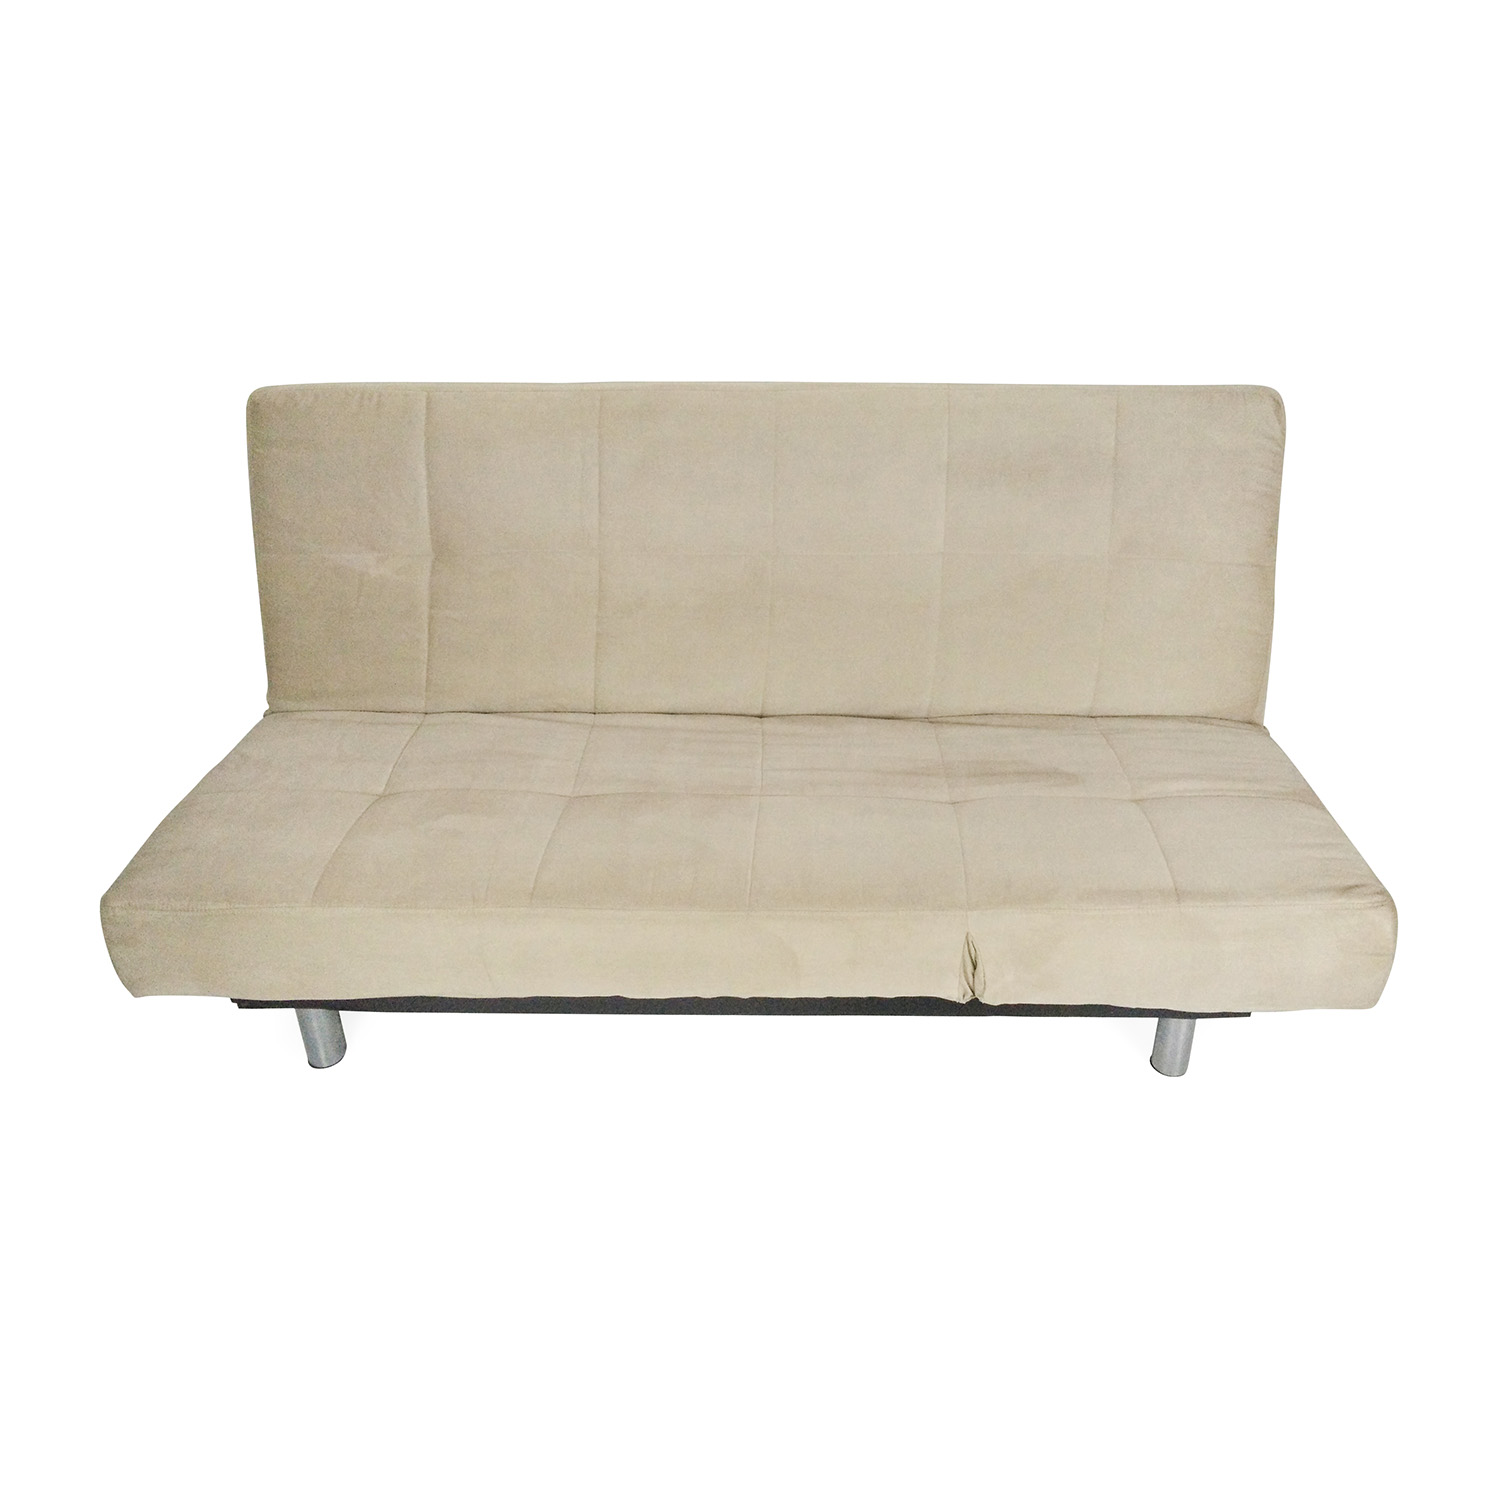 Second hand futon roselawnlutheran for Second hand sofas